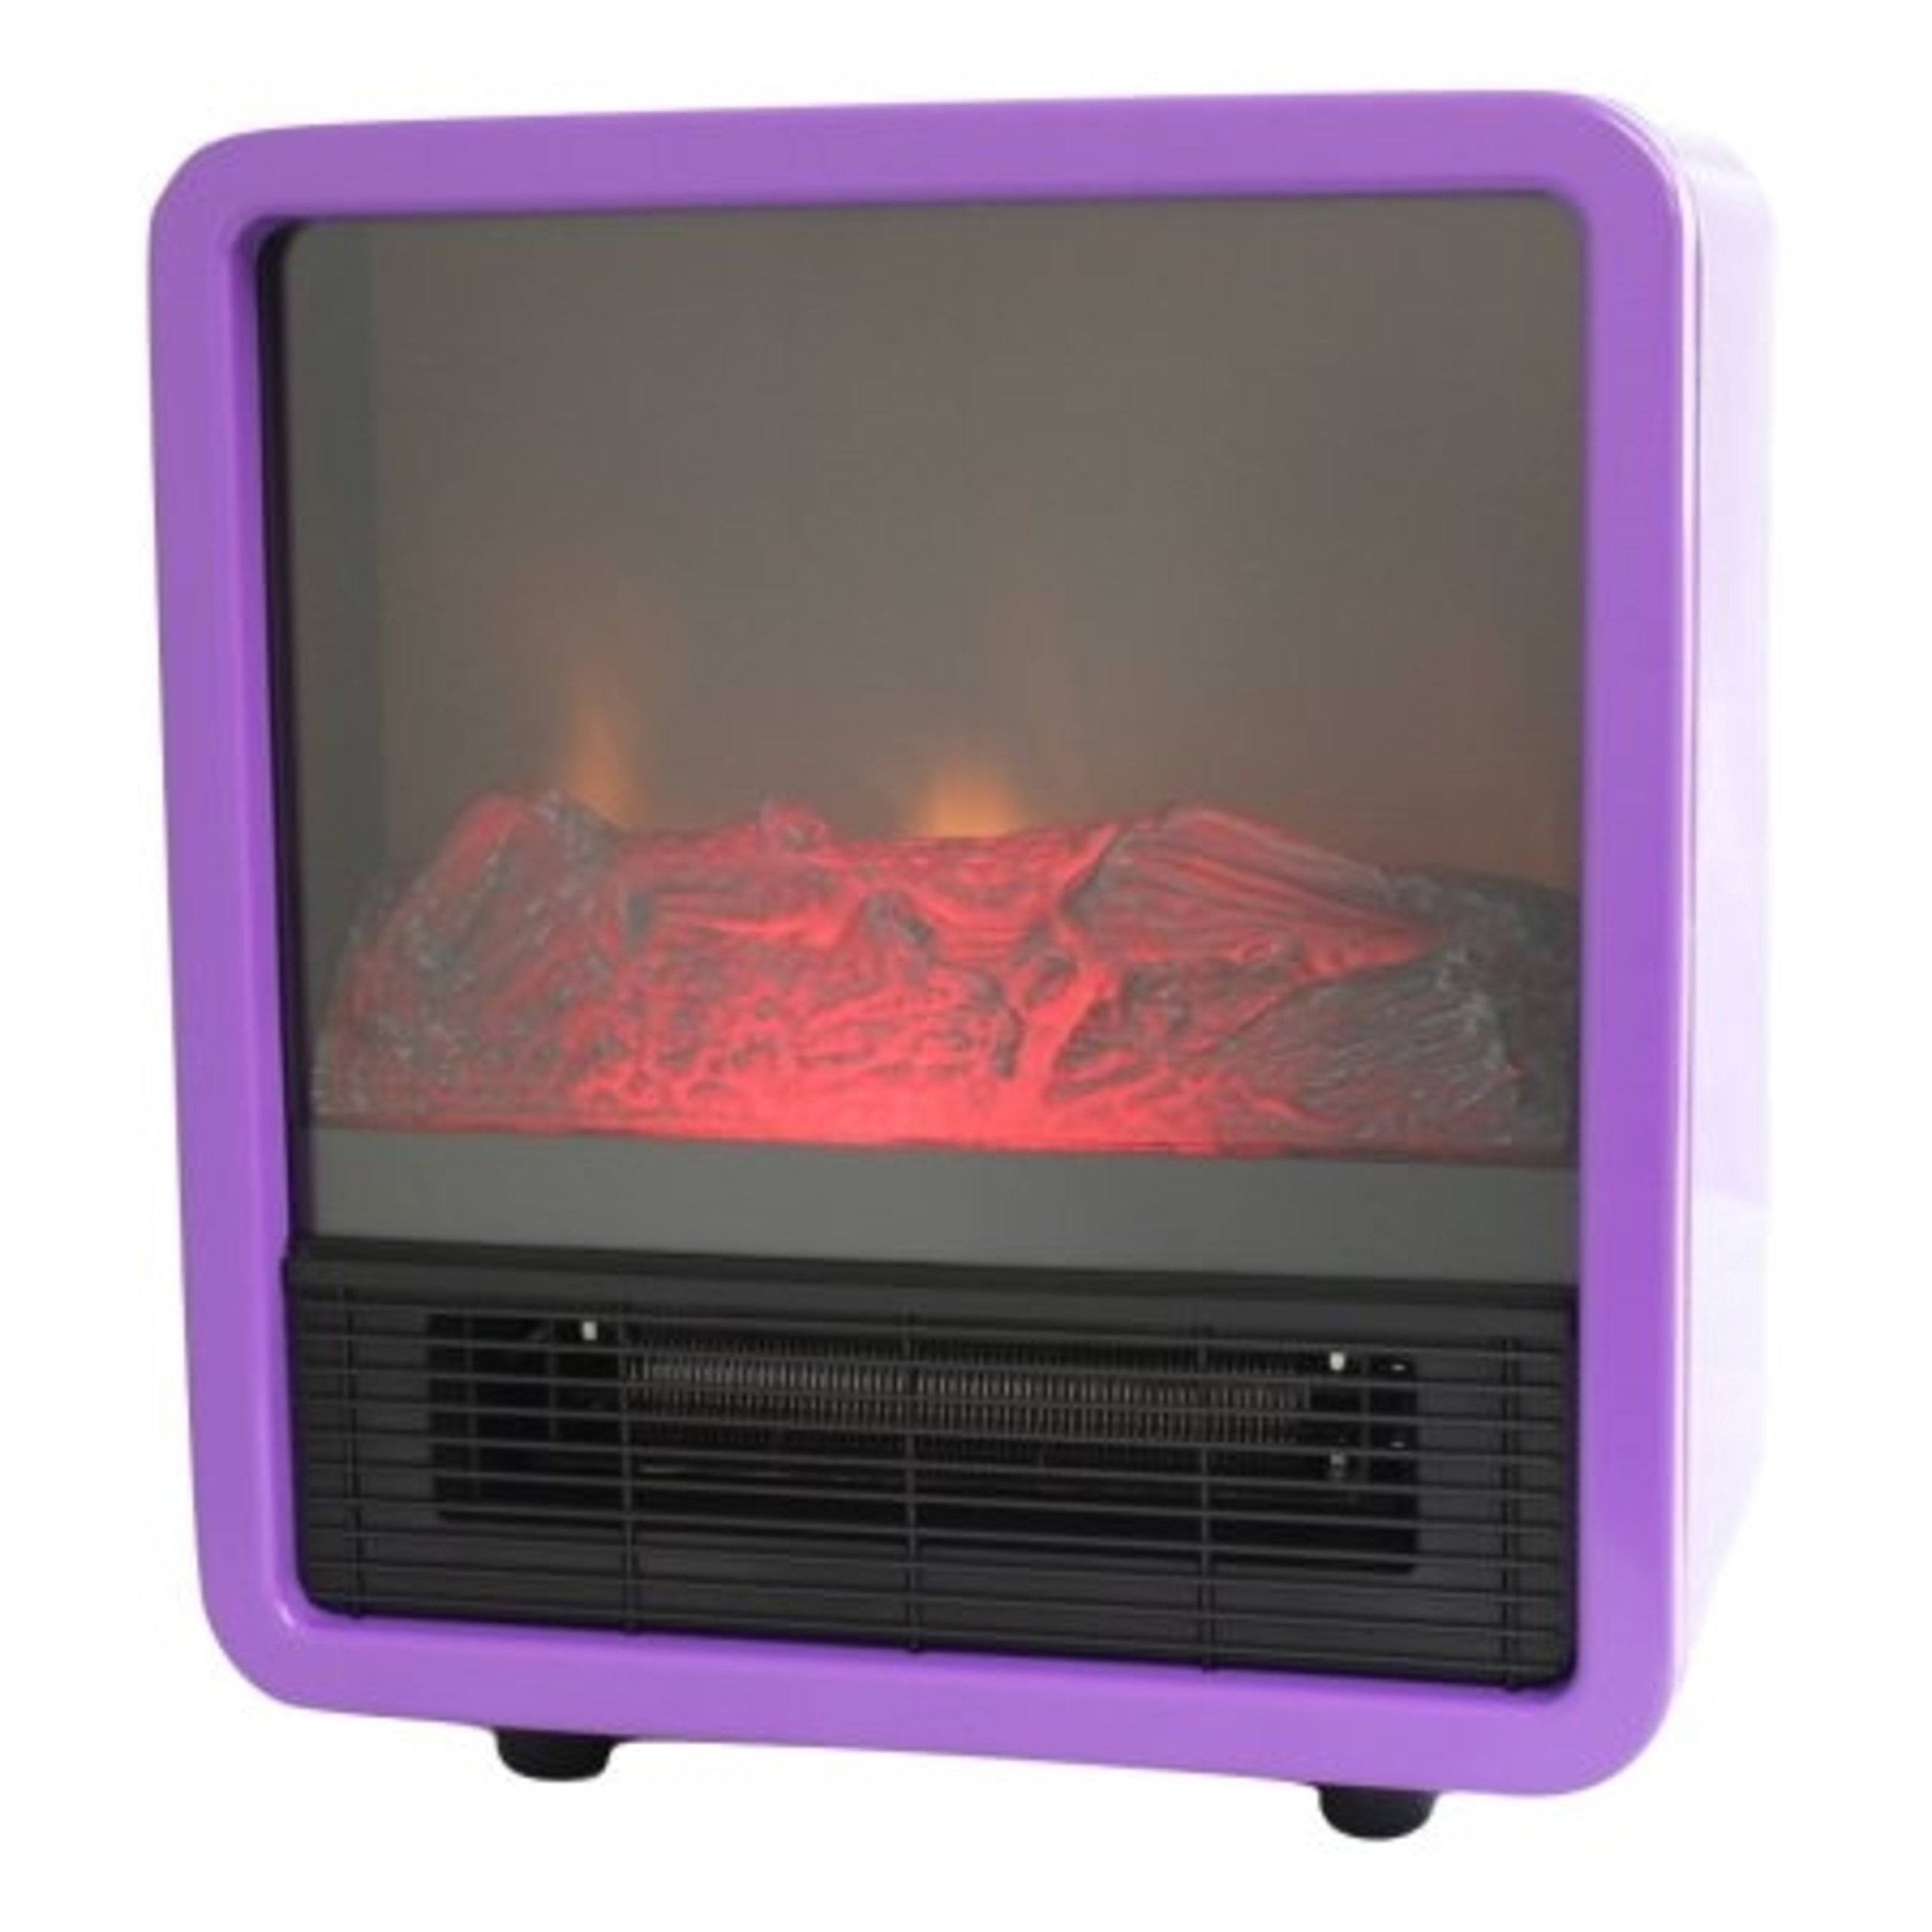 Personal Portable Fire Cube Electric 1500 Watts Heater Fireplace, Purple